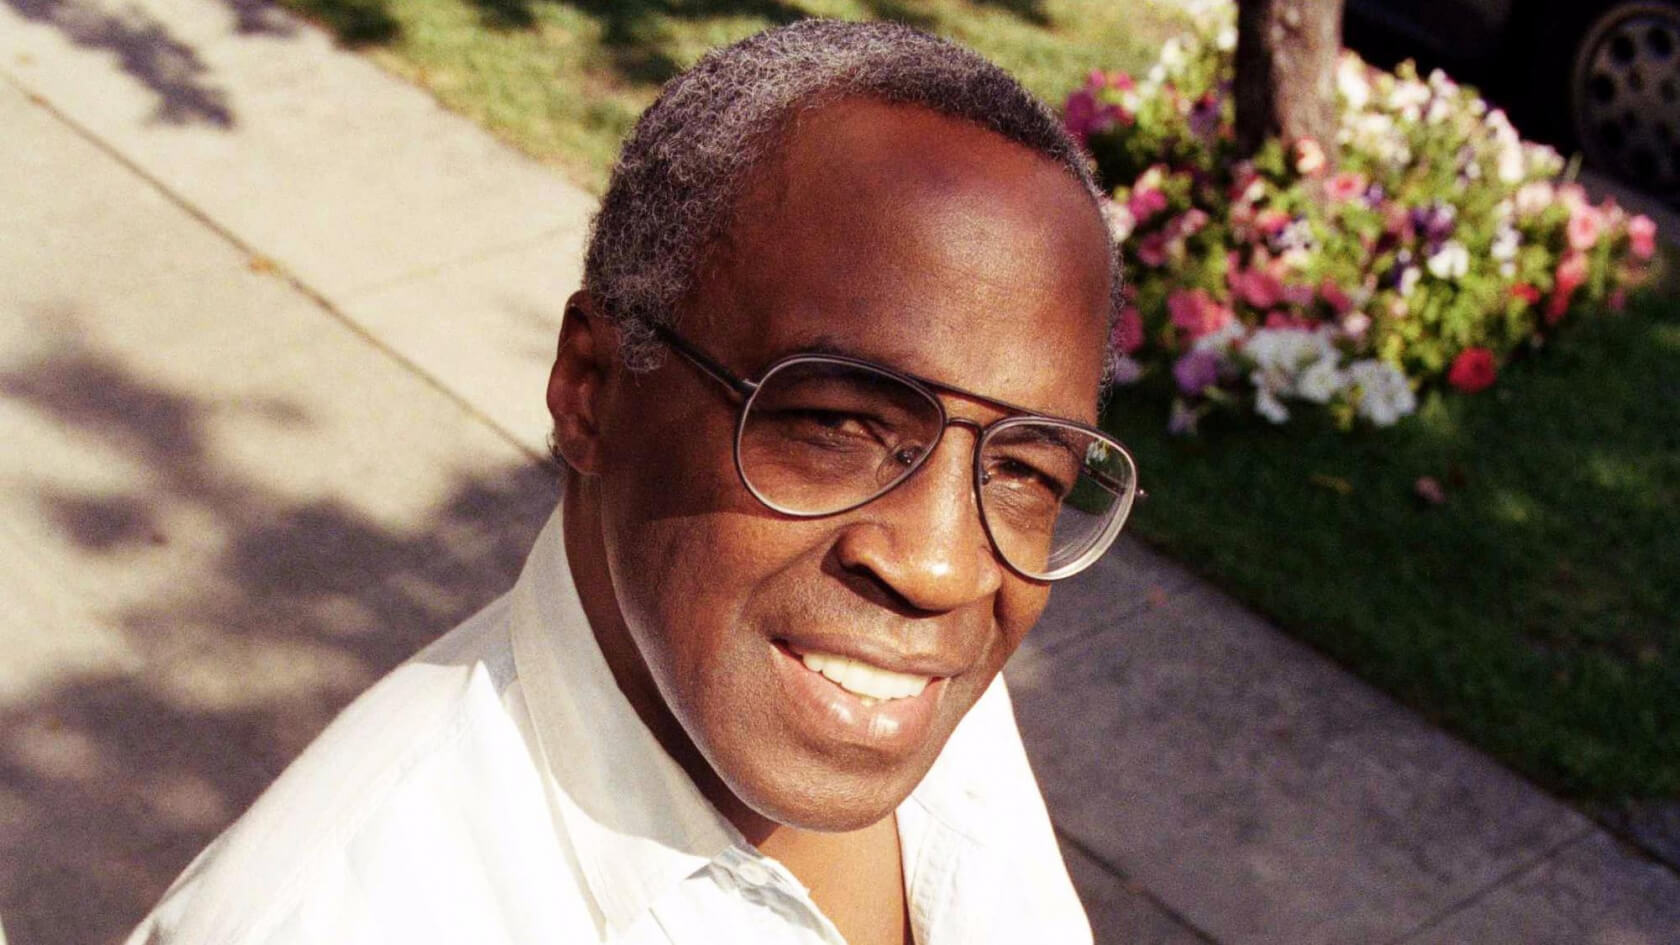 Robert Guillaume, the actor who voiced Half-Life 2's Dr. Eli Vance, dies aged 89